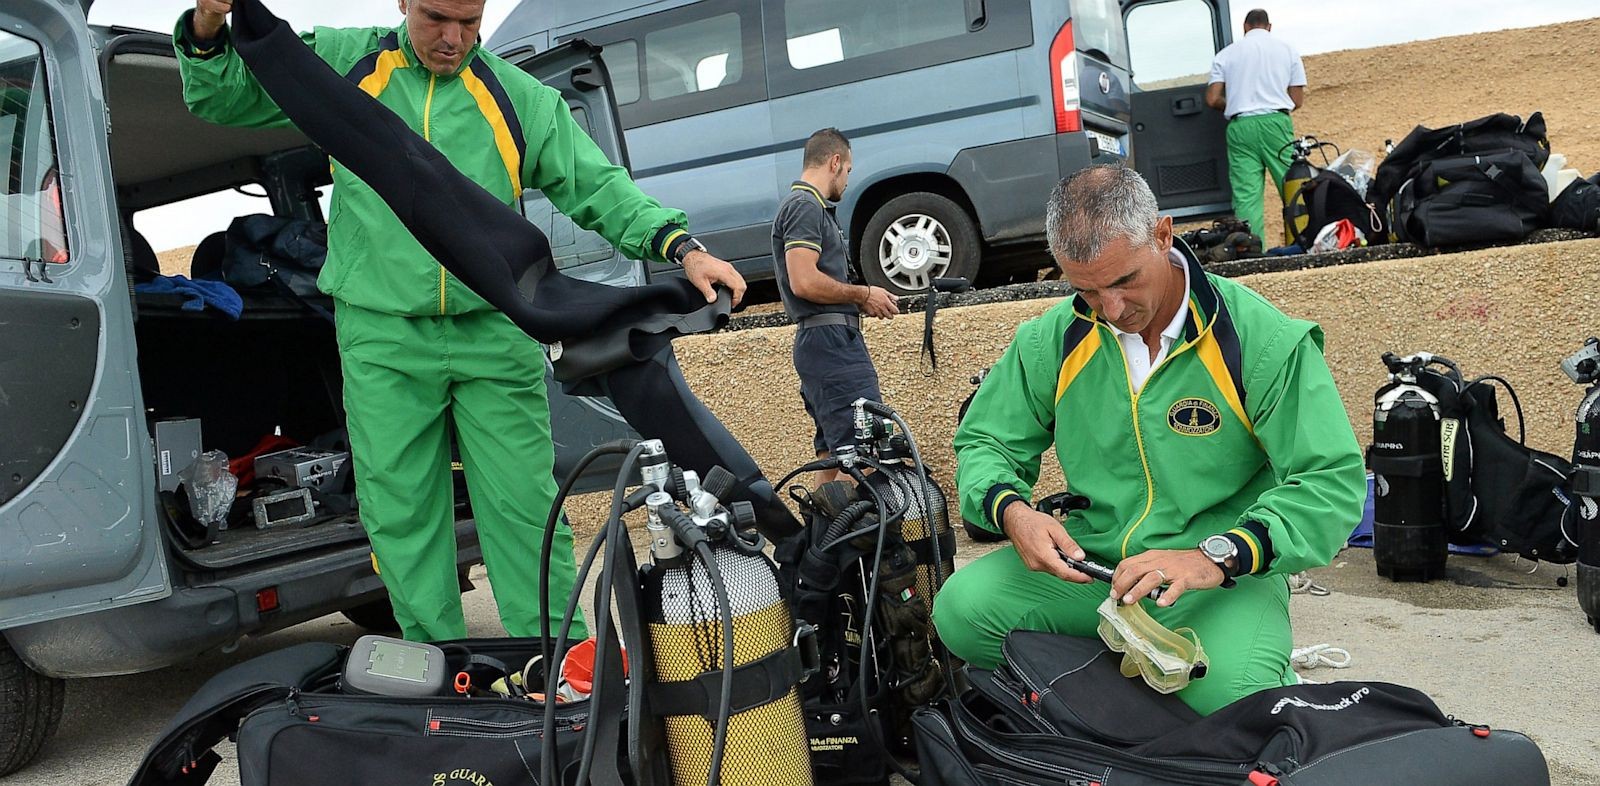 PHOTO: A Guardia di Finanza diver prepares his equipment